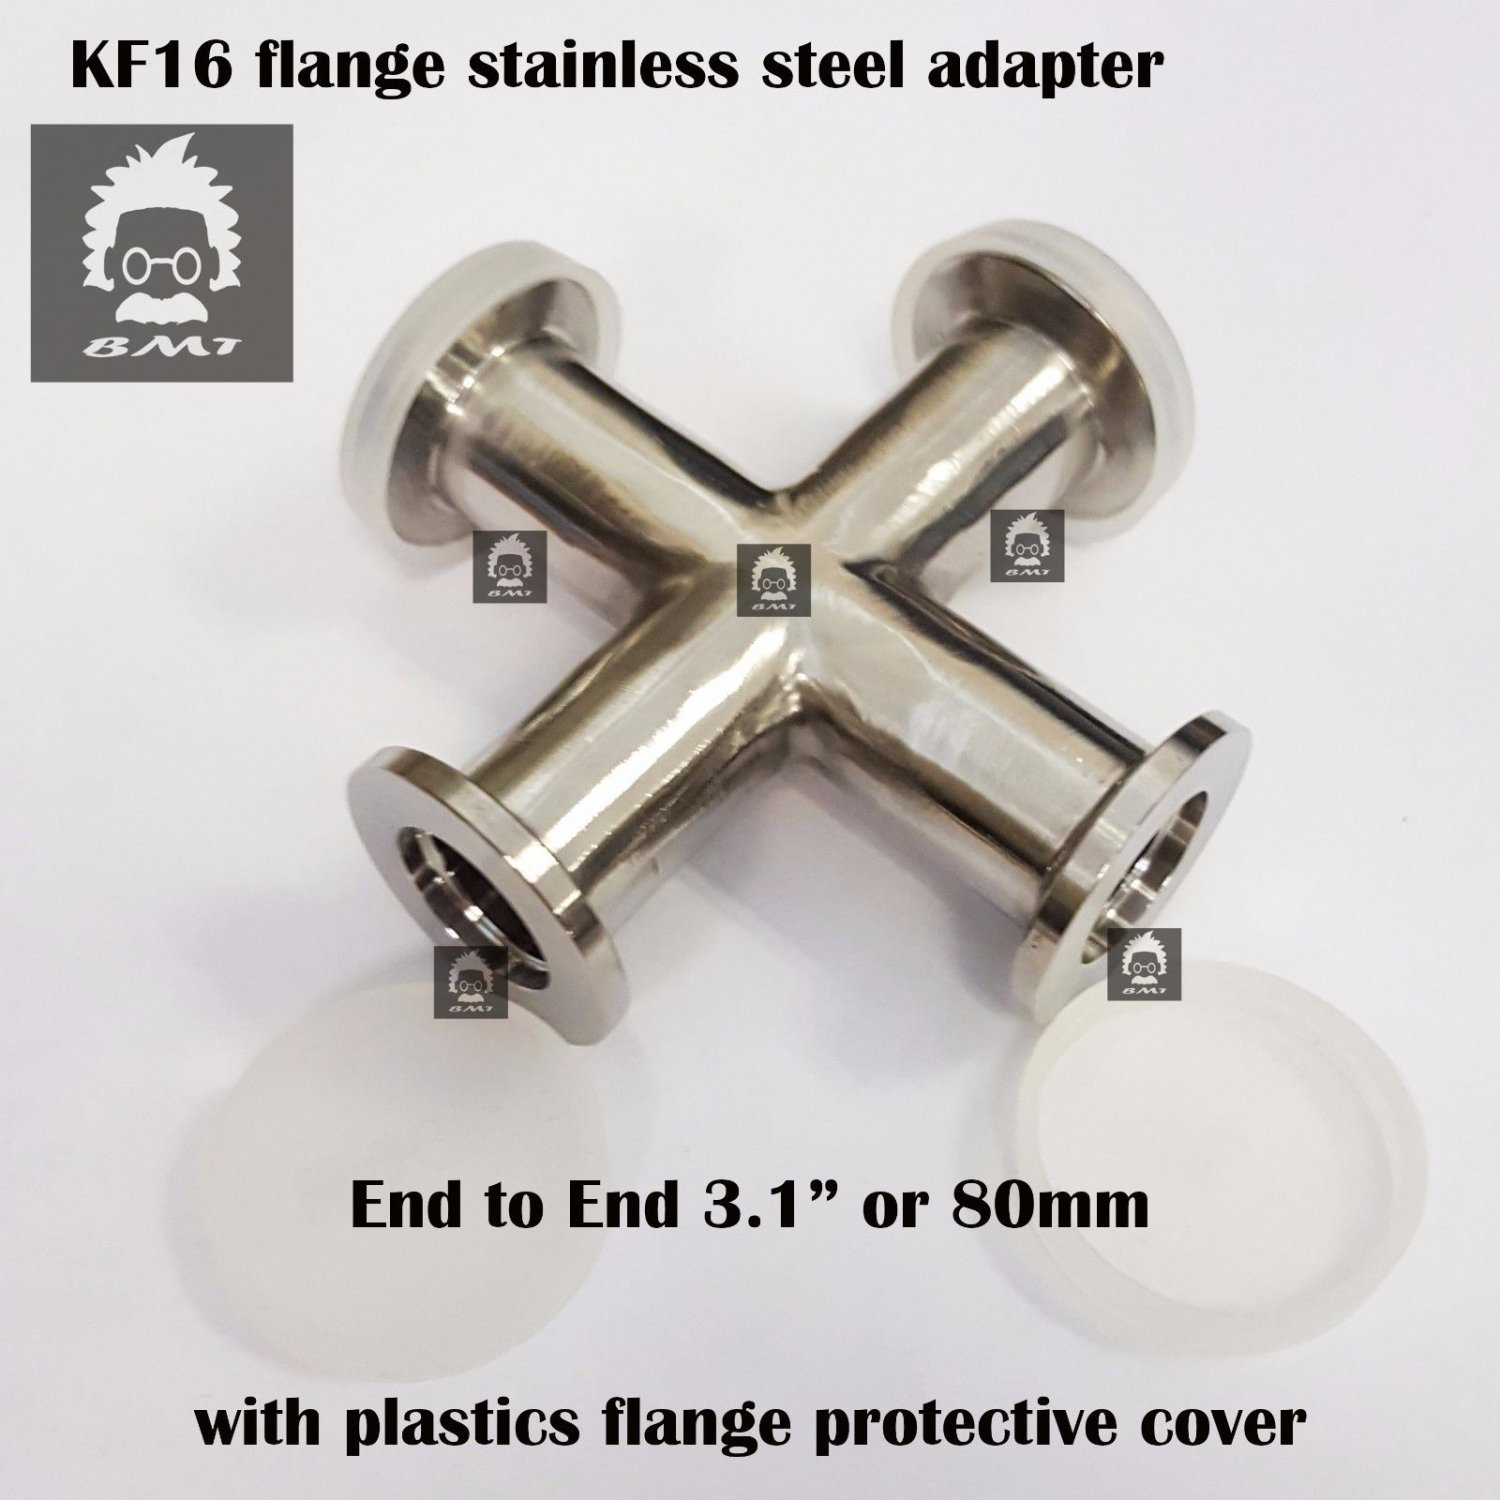 KF16 Cross 4-way vacuum adapter, all ends KF16 flange SS 304, finely polished